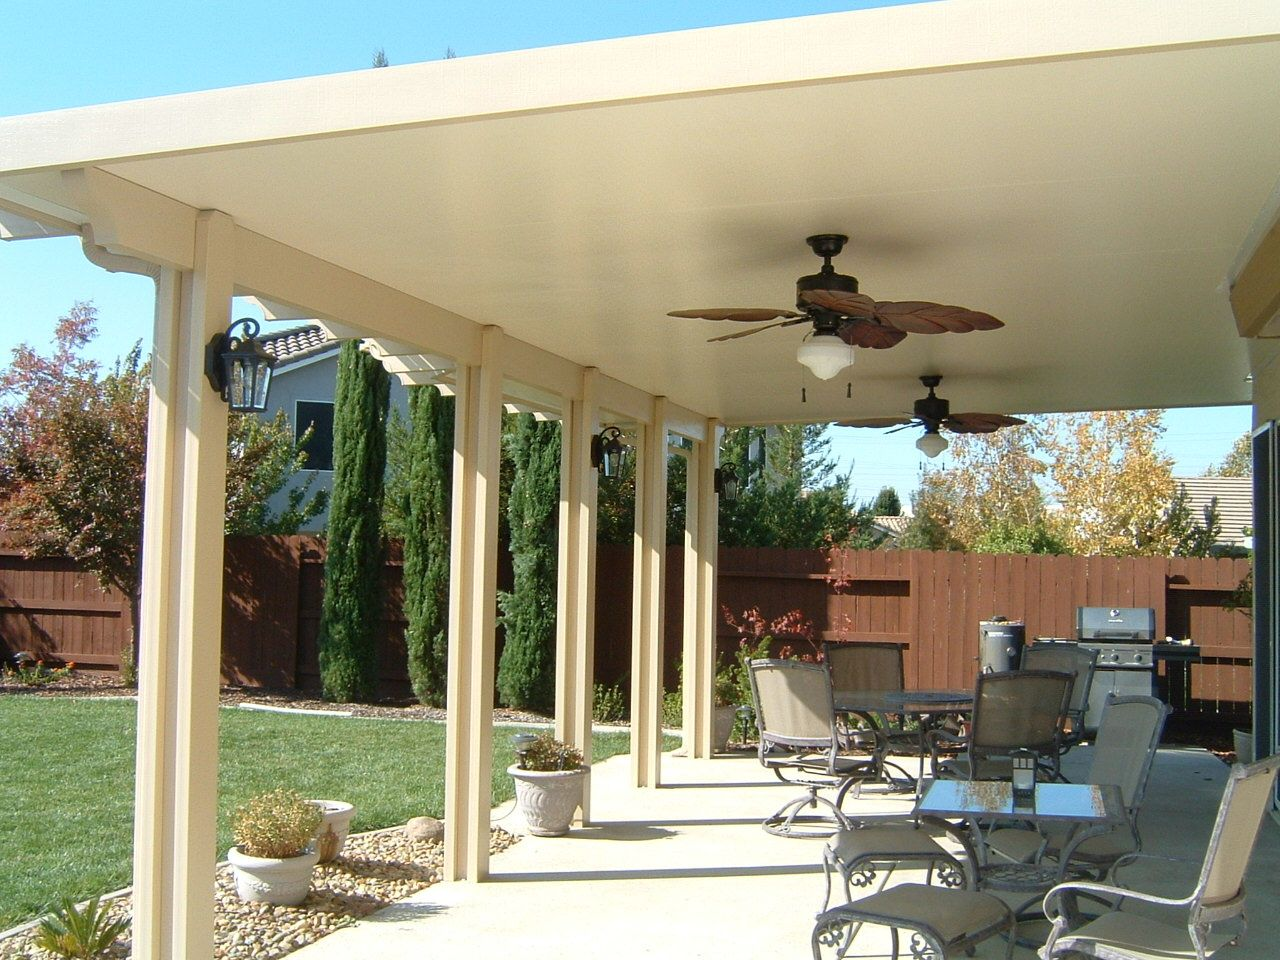 Three Inch Insulated Roof Panels Backyard Gazebo Backyard Patio Furniture Patio